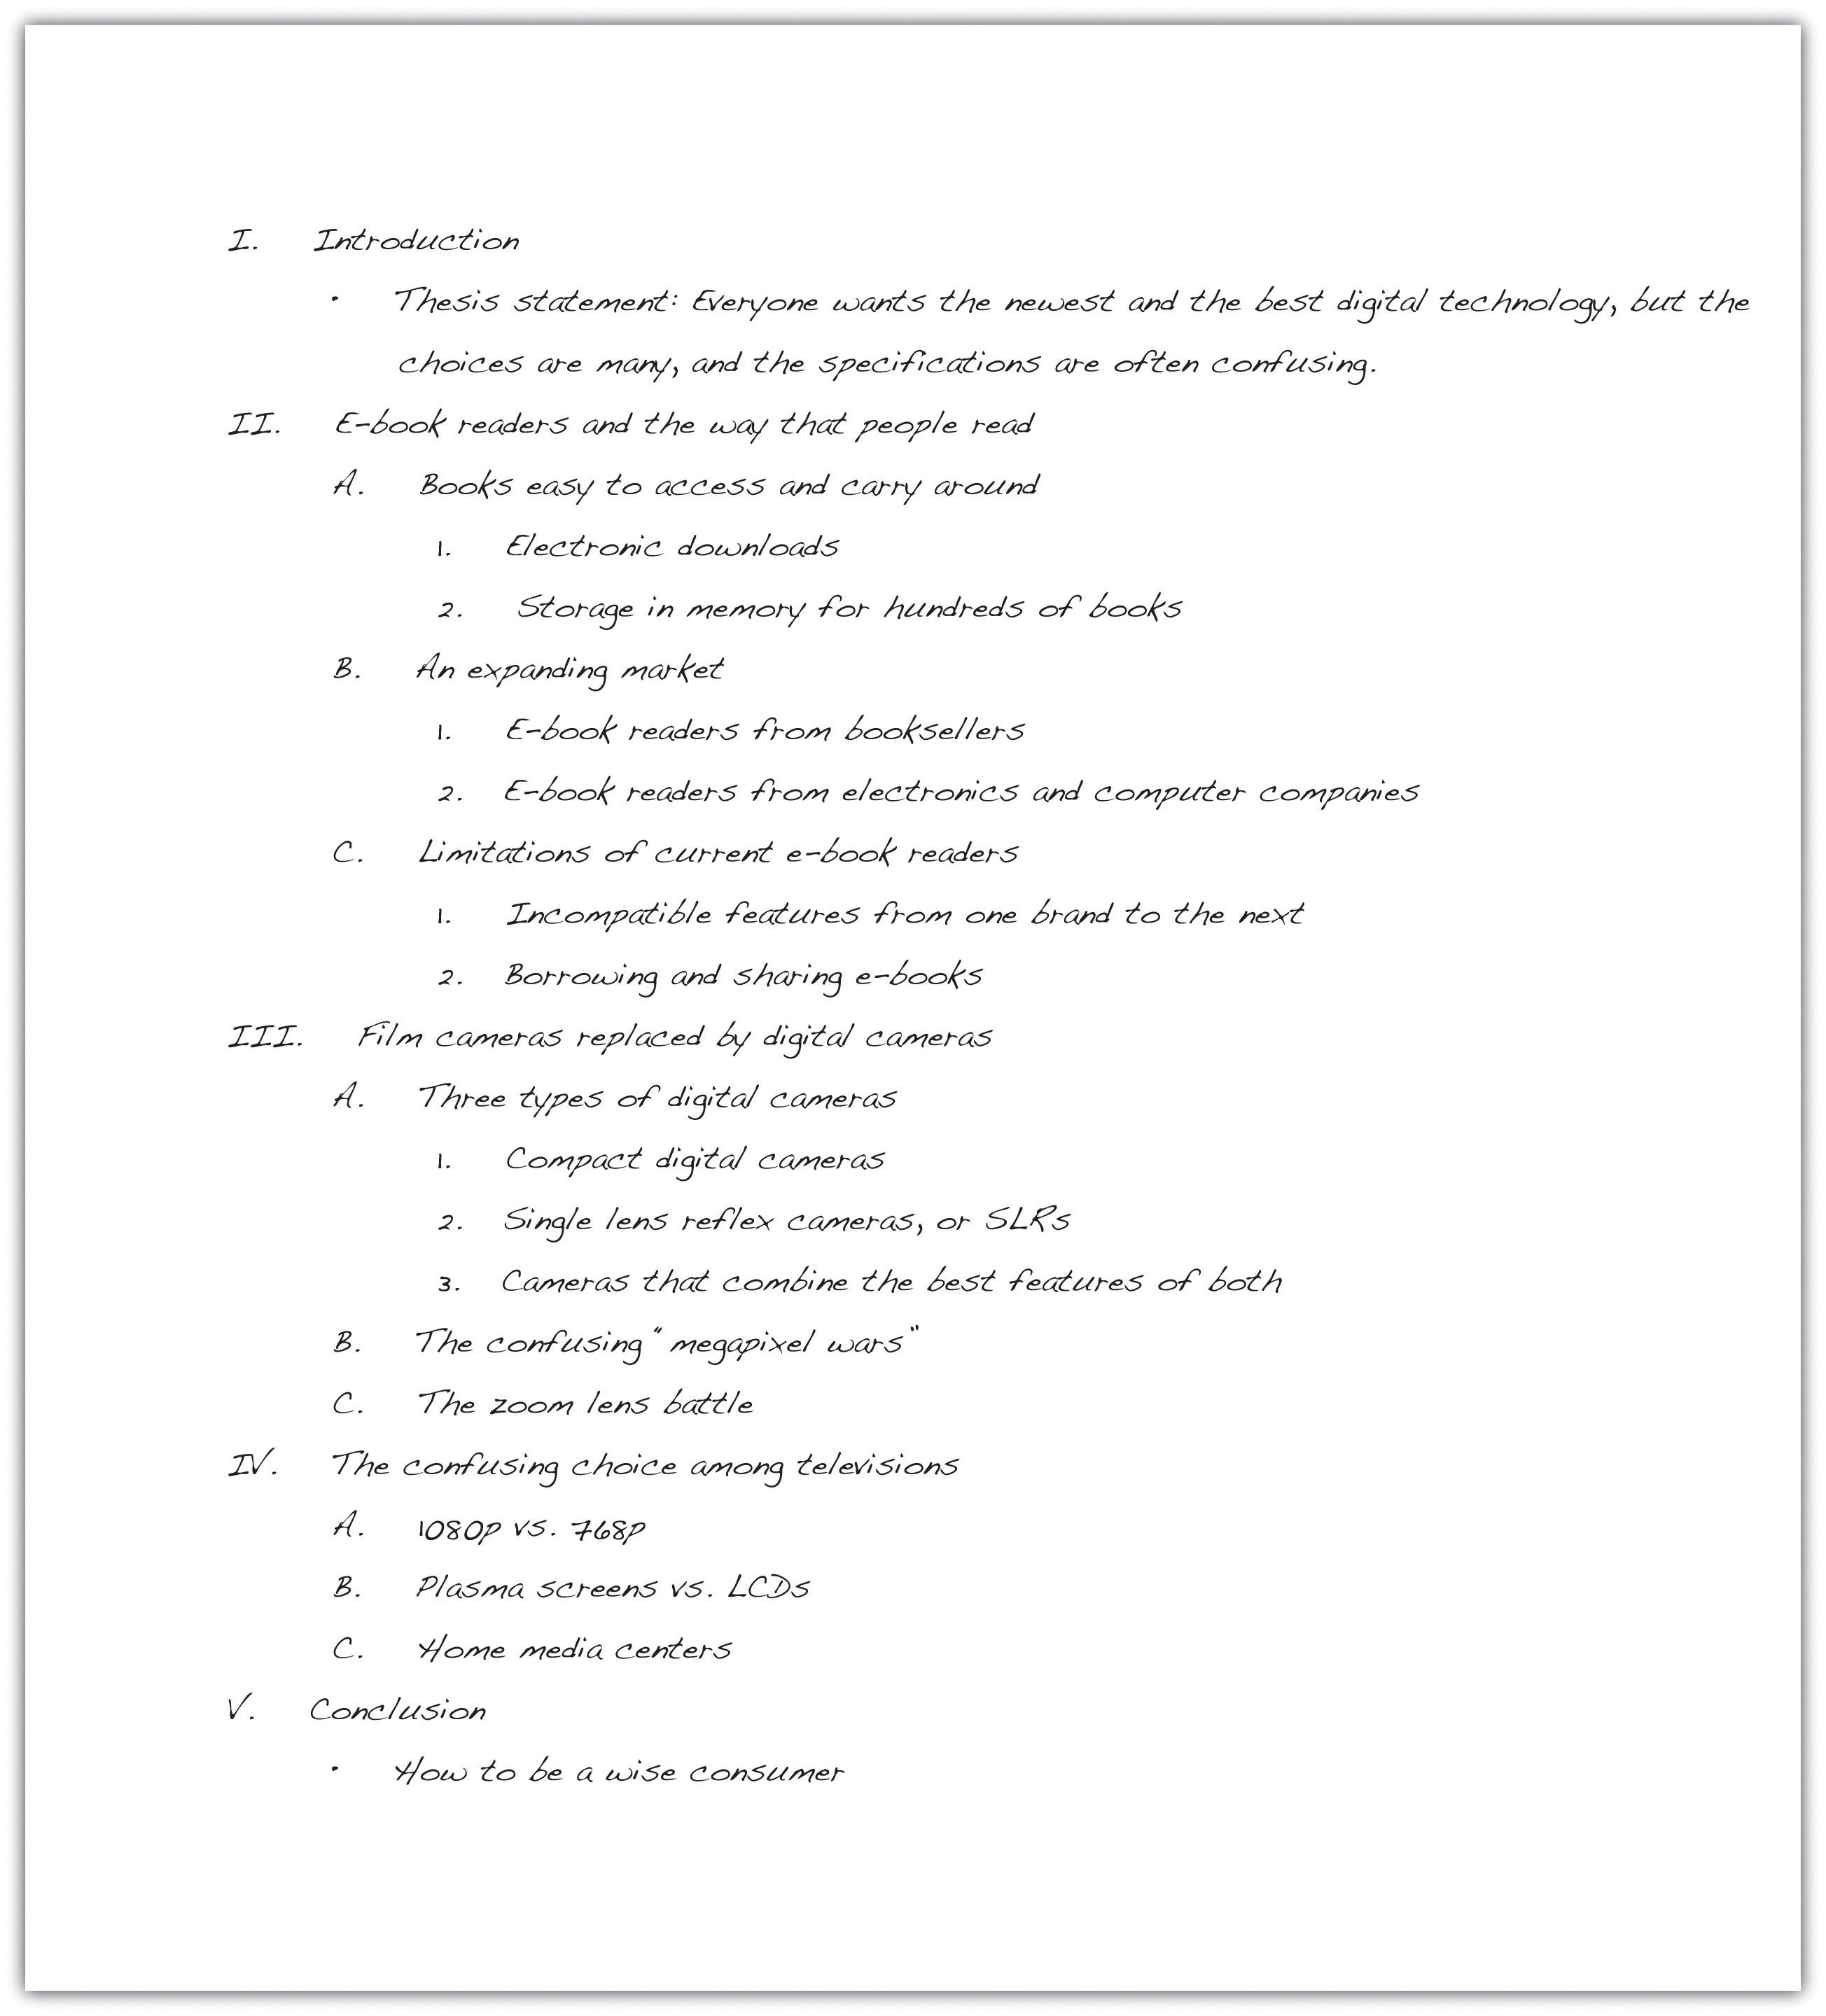 Outline Of Student Paper Showing Roman Numeral Formatting Followed By A B C